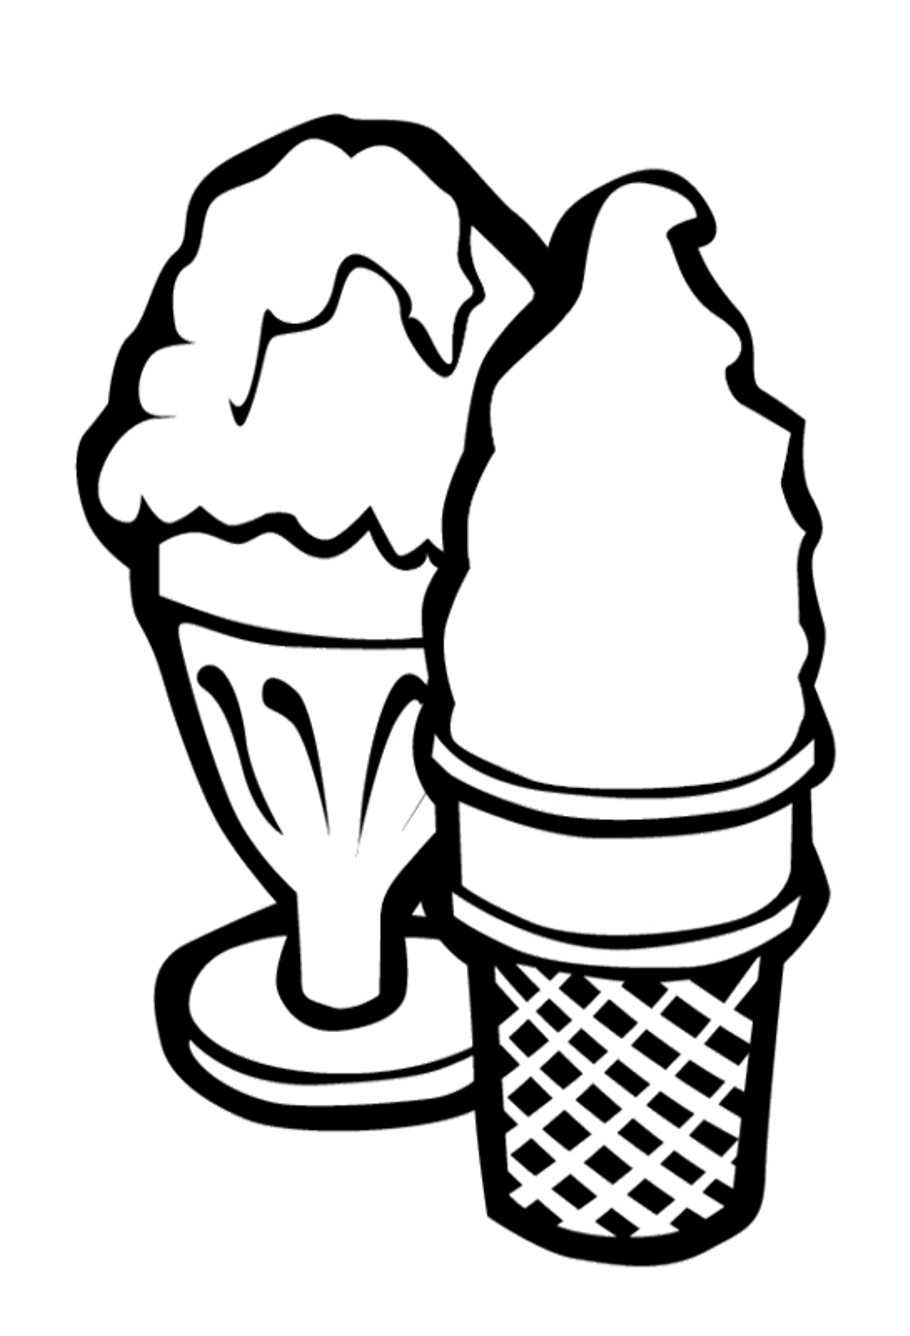 coloring pages ice cream printable coloring sheet instant download ice cream cones pages coloring ice cream